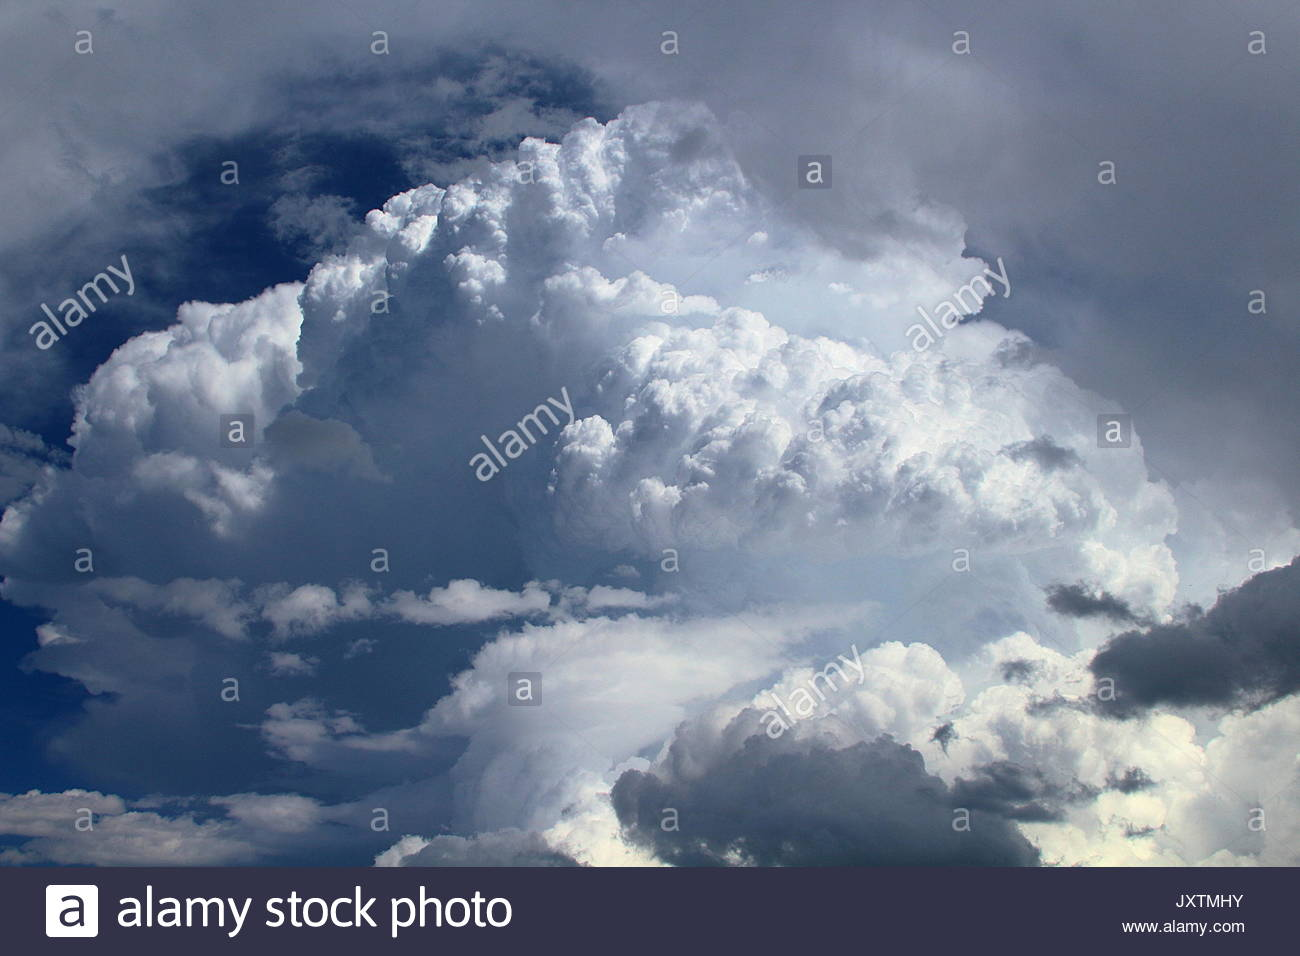 Large New Mexico thunderstorm over Sangre de Cristo mountains - Stock Image